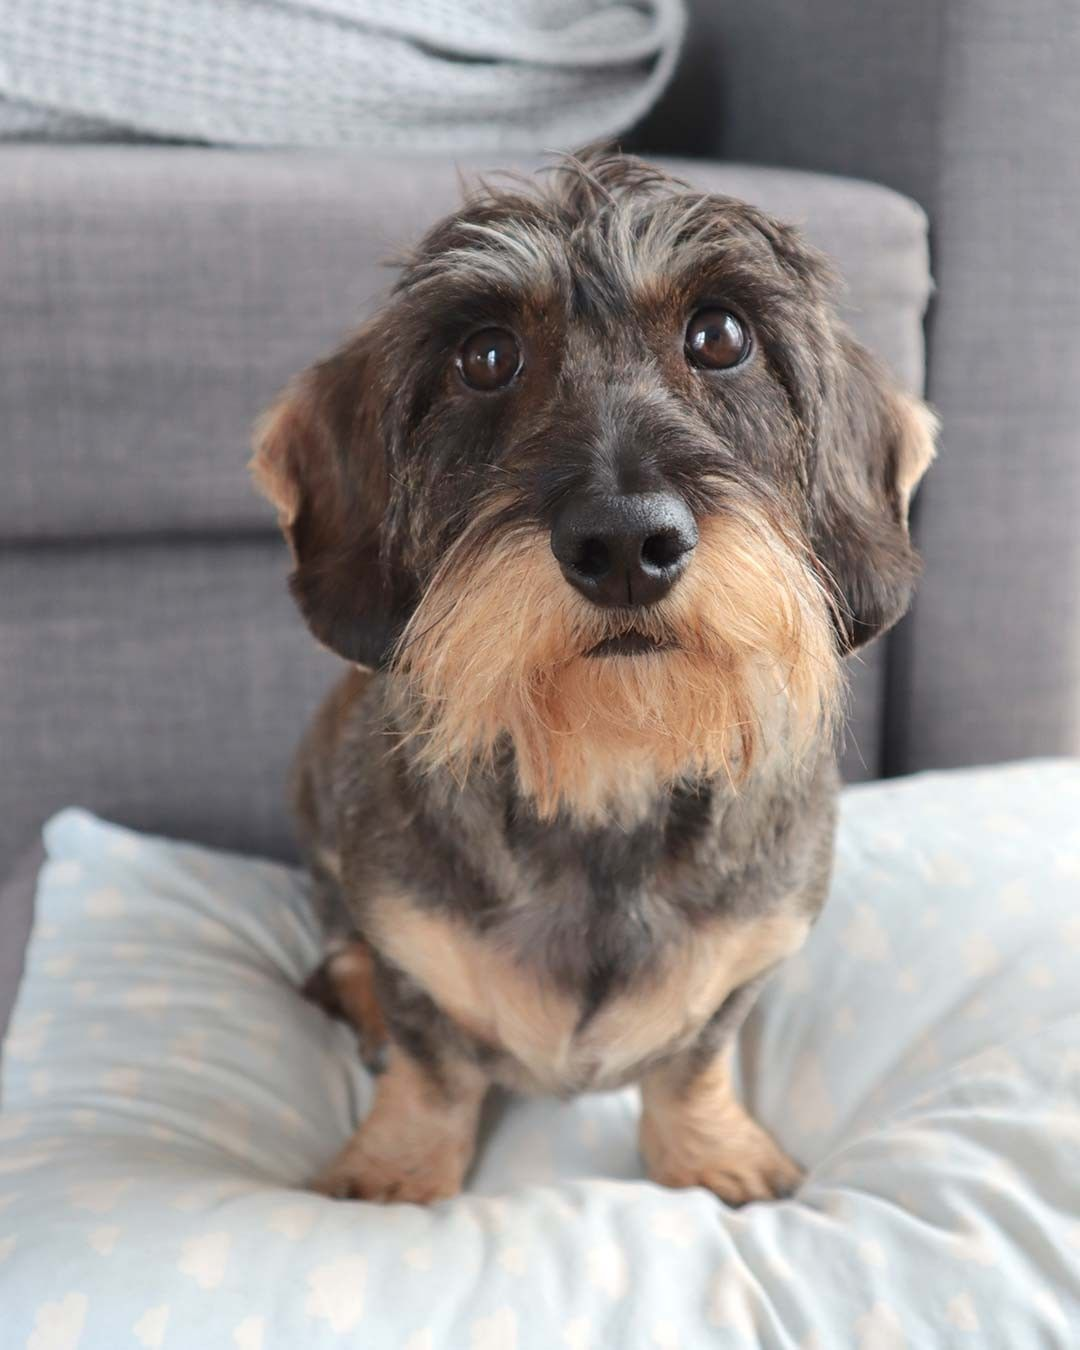 Visit Our Blog Dachshund Central Com To Find The Best Products And Accessories For Hounds And Doglovers Dac Wire Haired Dachshund Dachshund Dachshund Love